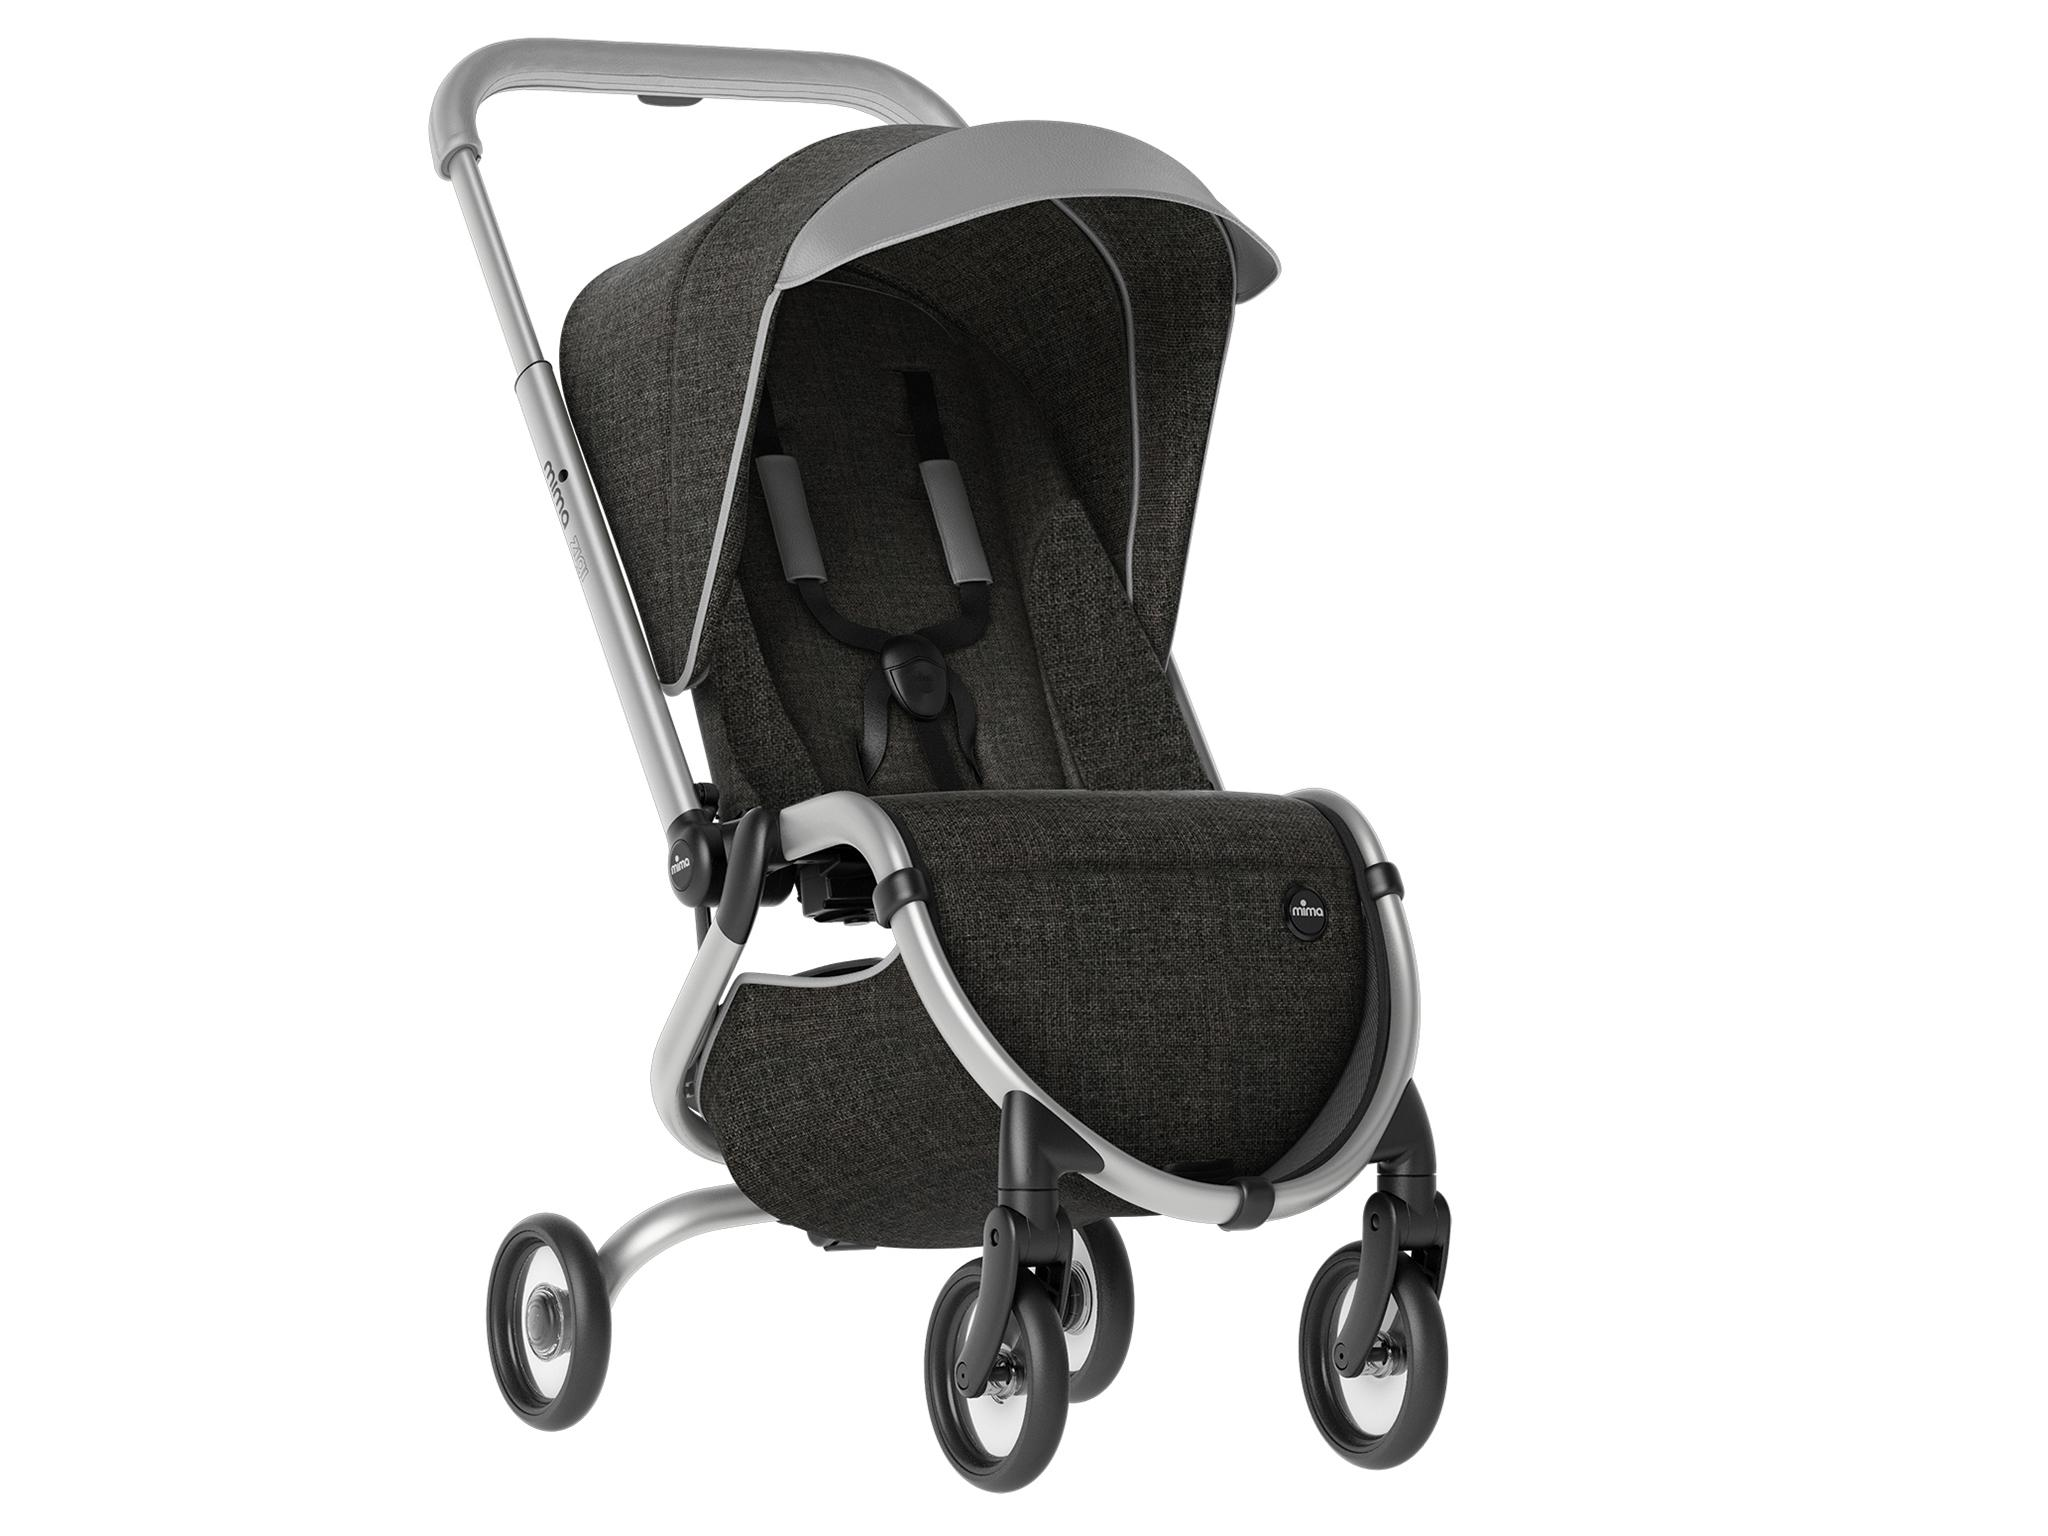 Best Compact Stroller The Perfect Collapsible Pushchair For